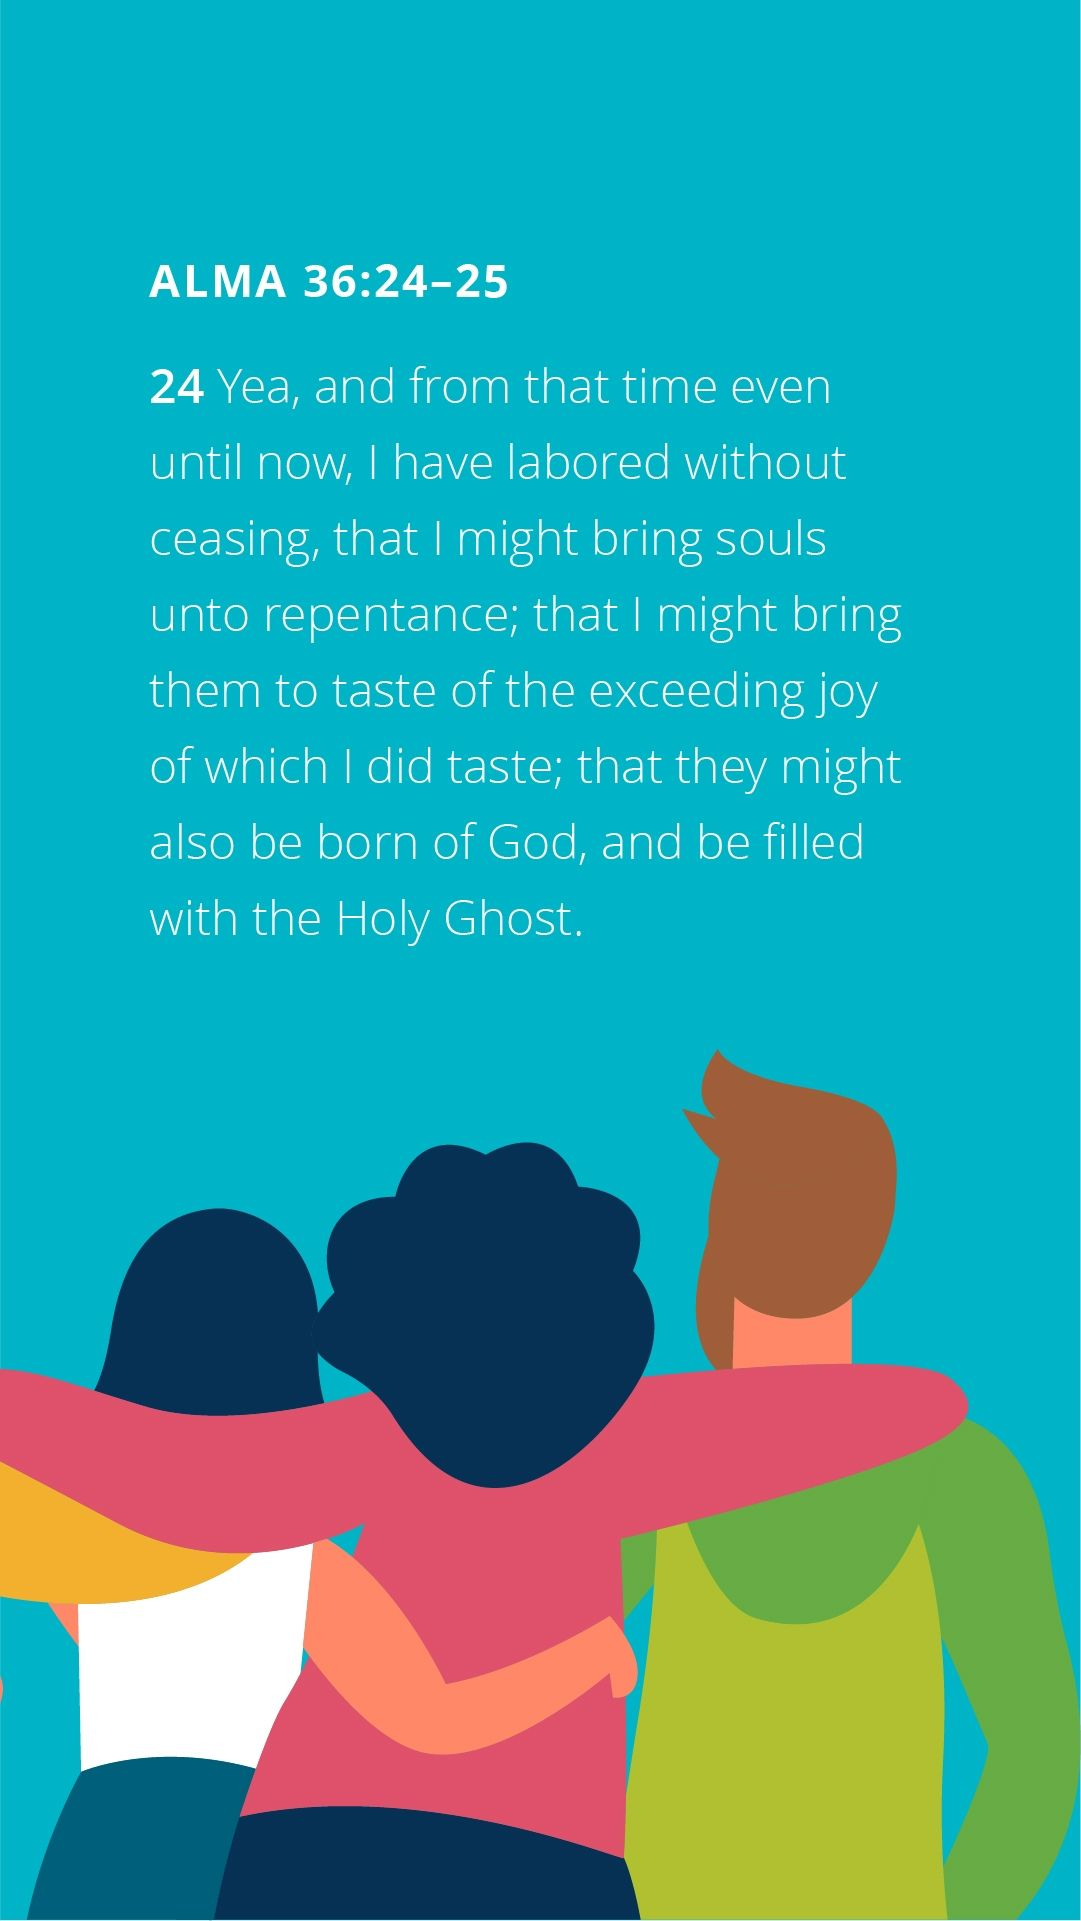 """""""Yea, and from that time even until now, I have labored without ceasing, that I might bring souls unto repentance; that I might bring them to taste of the exceeding joy of which I did taste; that they might also be born of God, and be filled with the Holy Ghost."""" — Alma 36:24"""